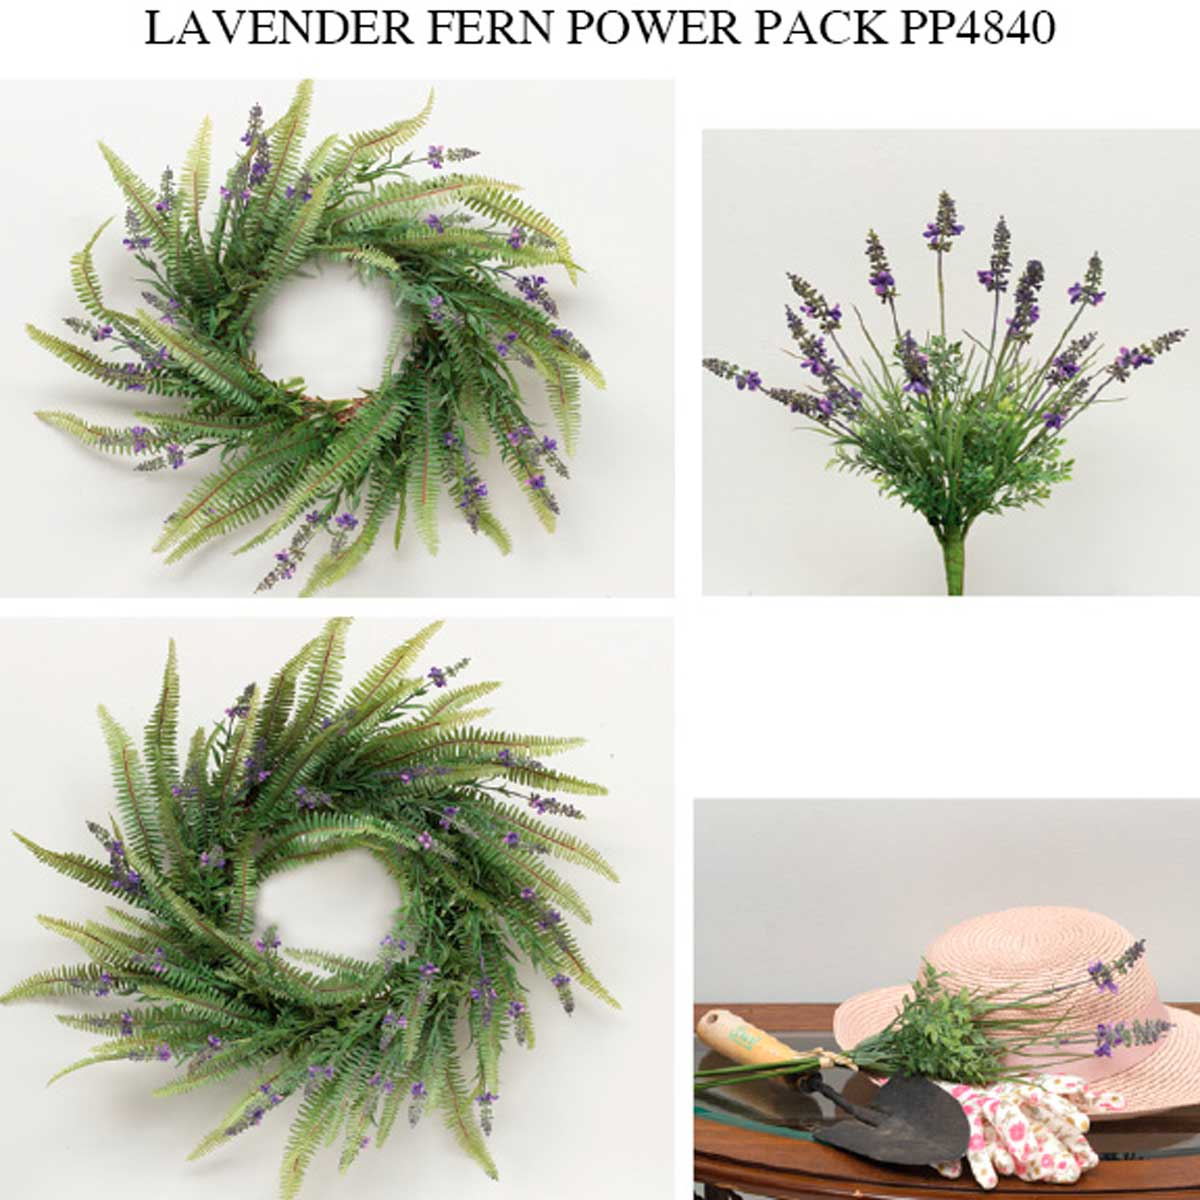 LAVENDER FERN POWER PACK 12 UNITS